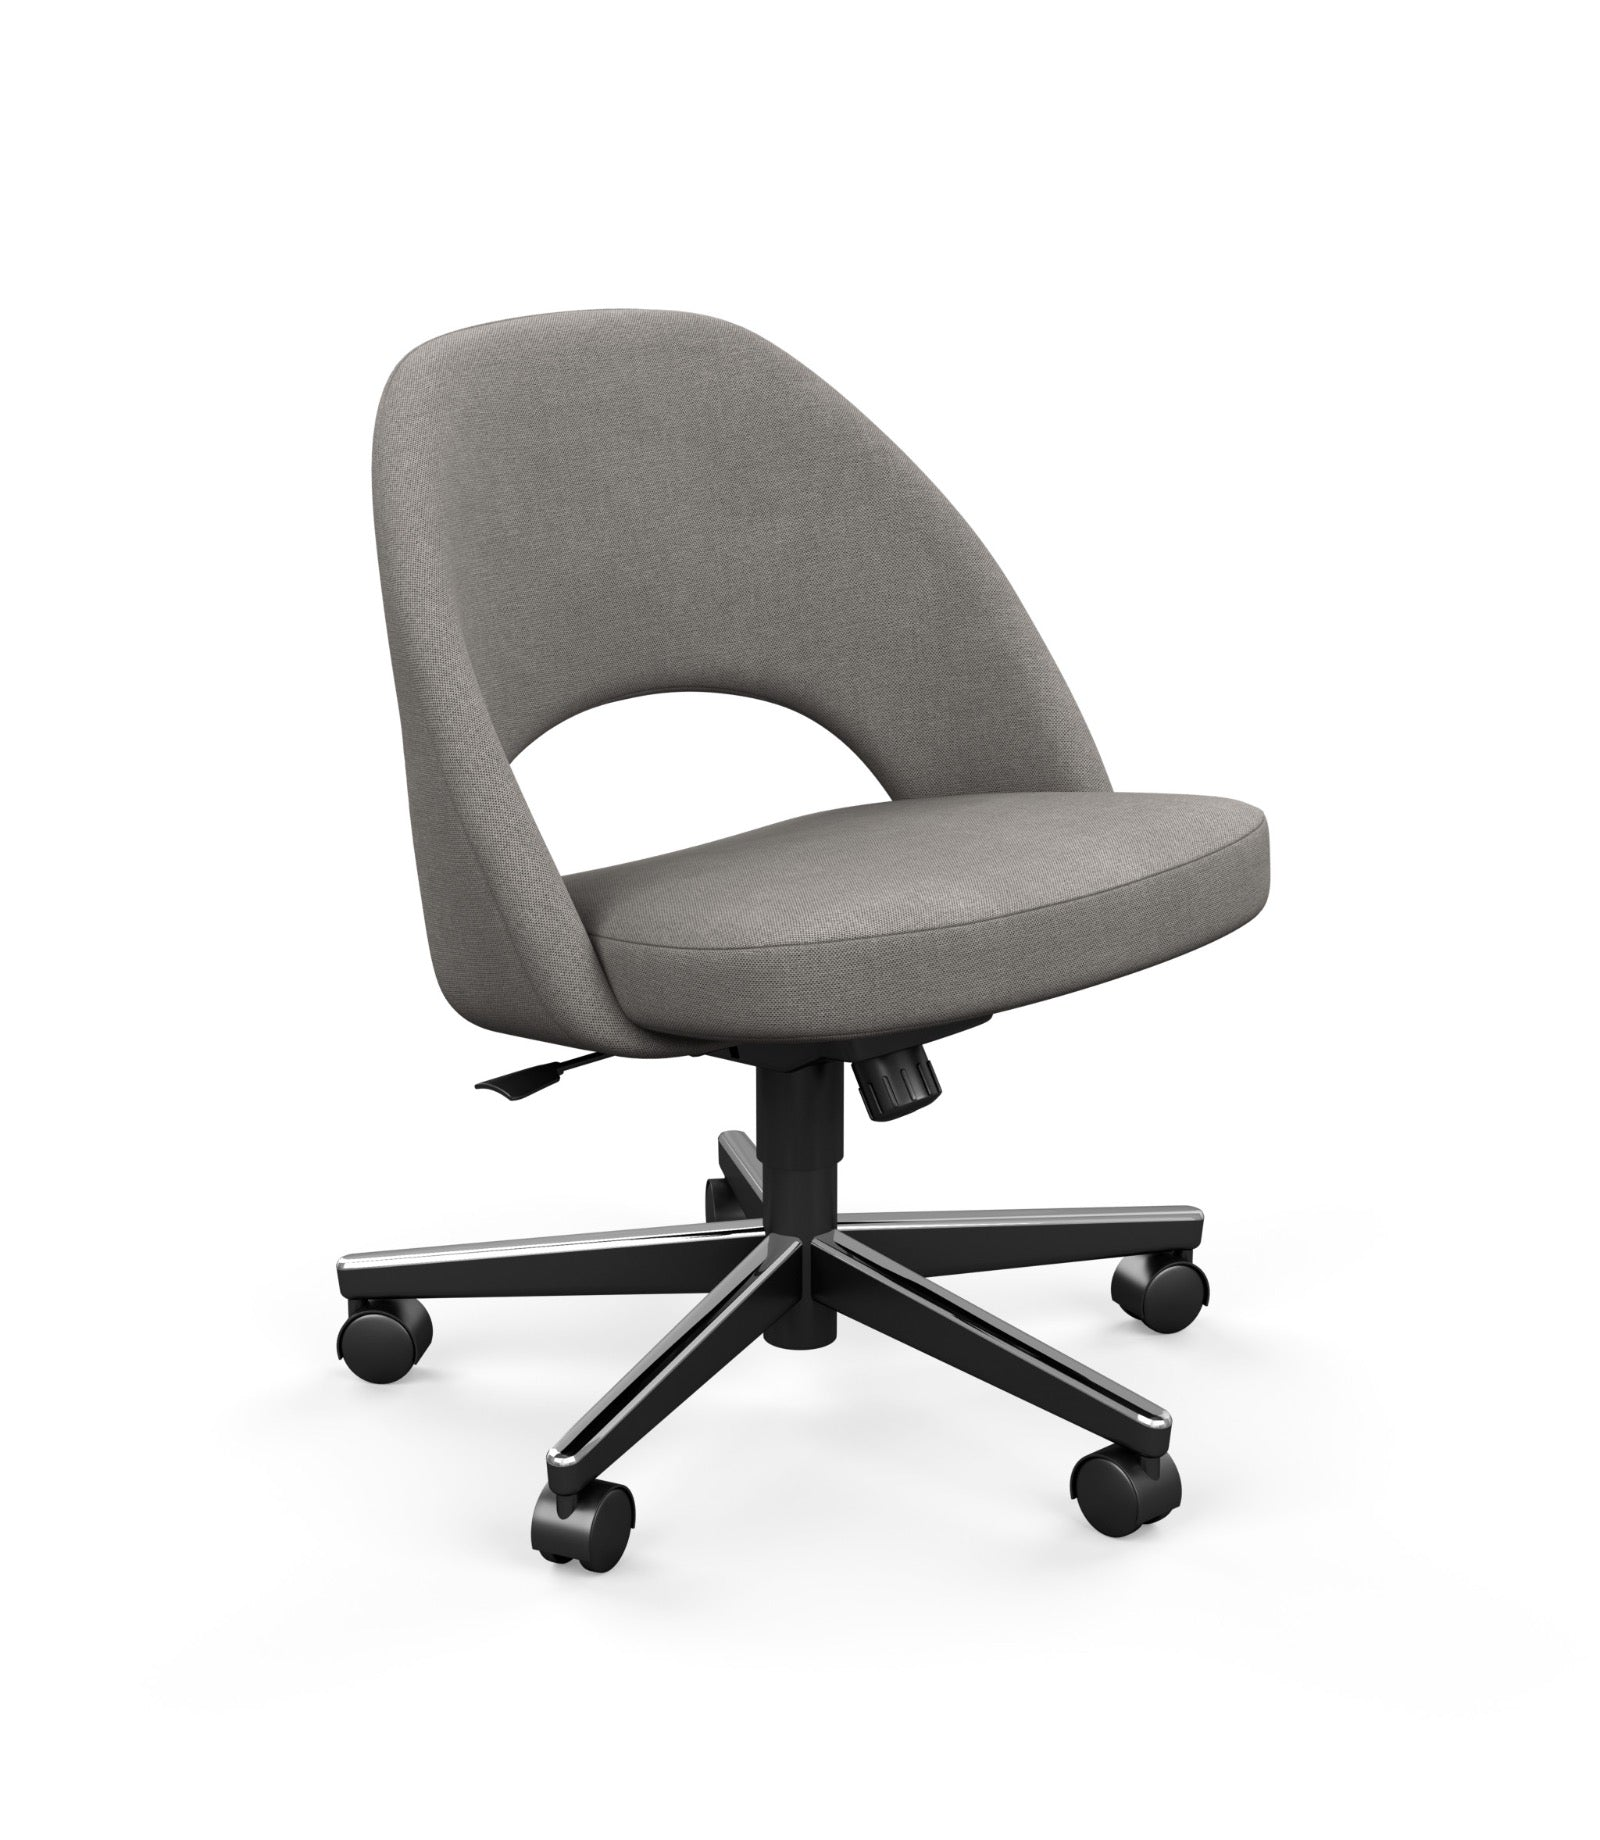 Saarinen Executive Armless Chair with Swivel Base